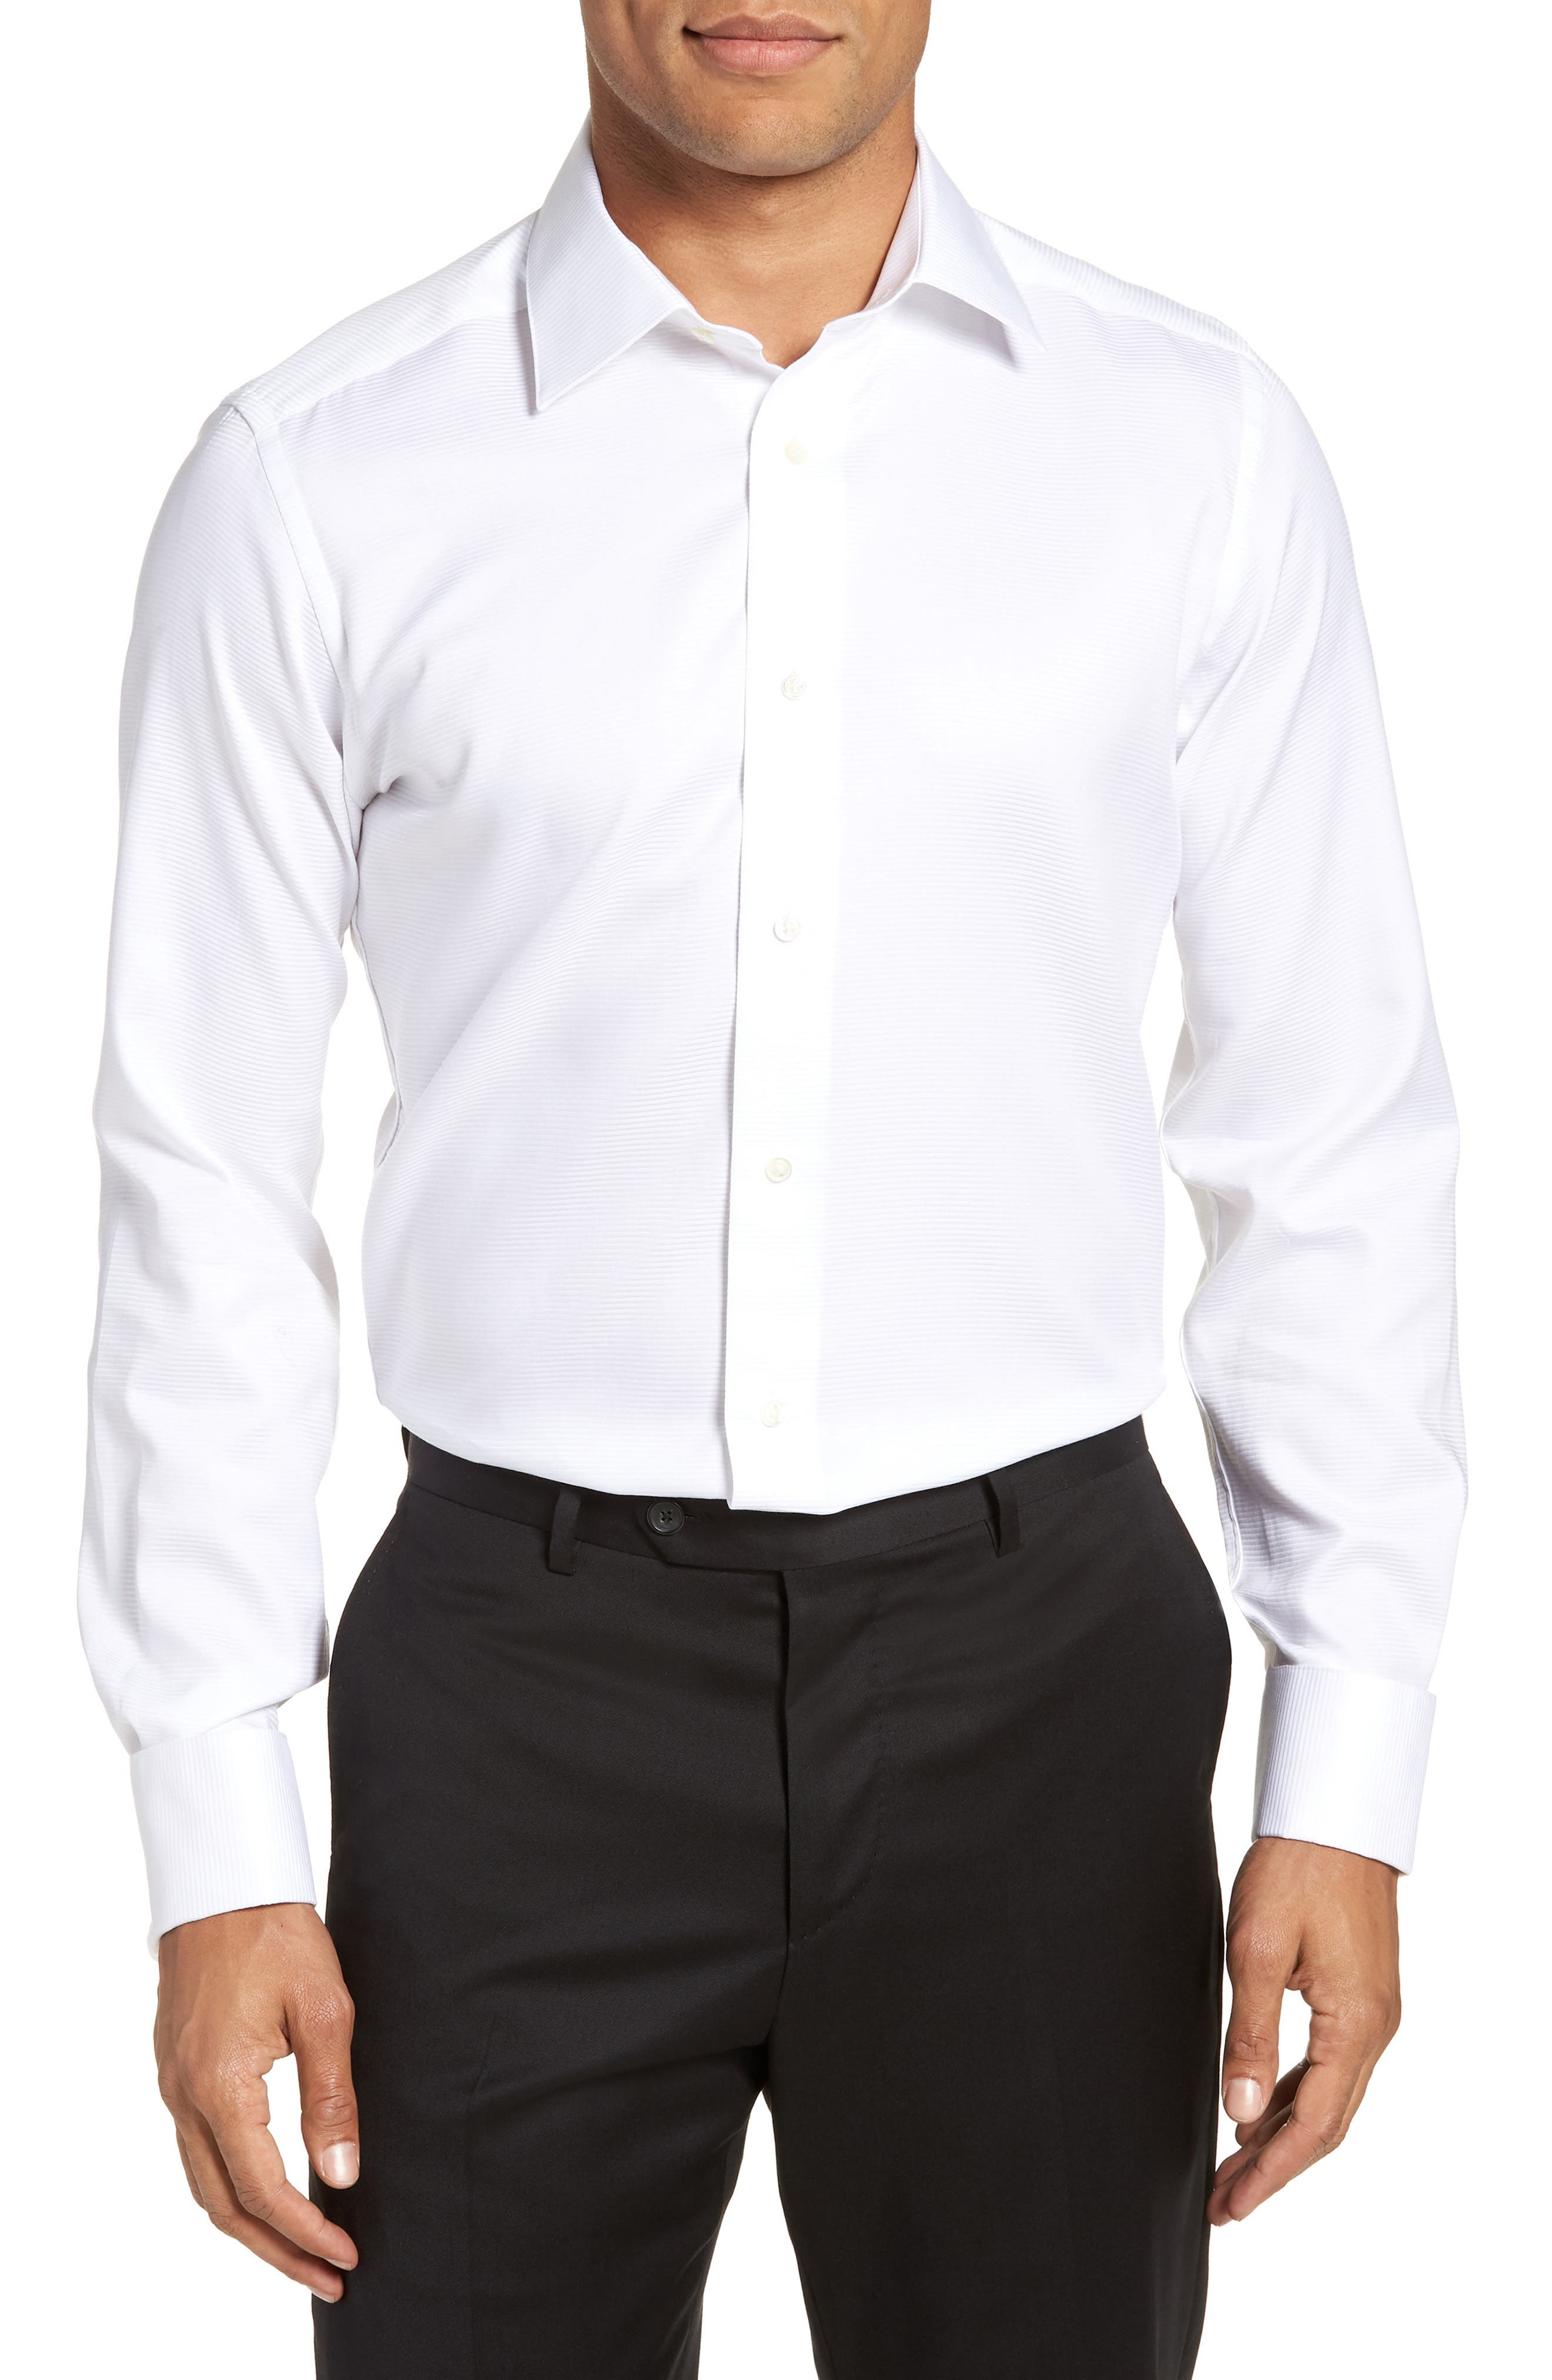 Trim Fit Twill French Cuff Tuxedo Shirt,                             Main thumbnail 1, color,                             SOLID WHITE